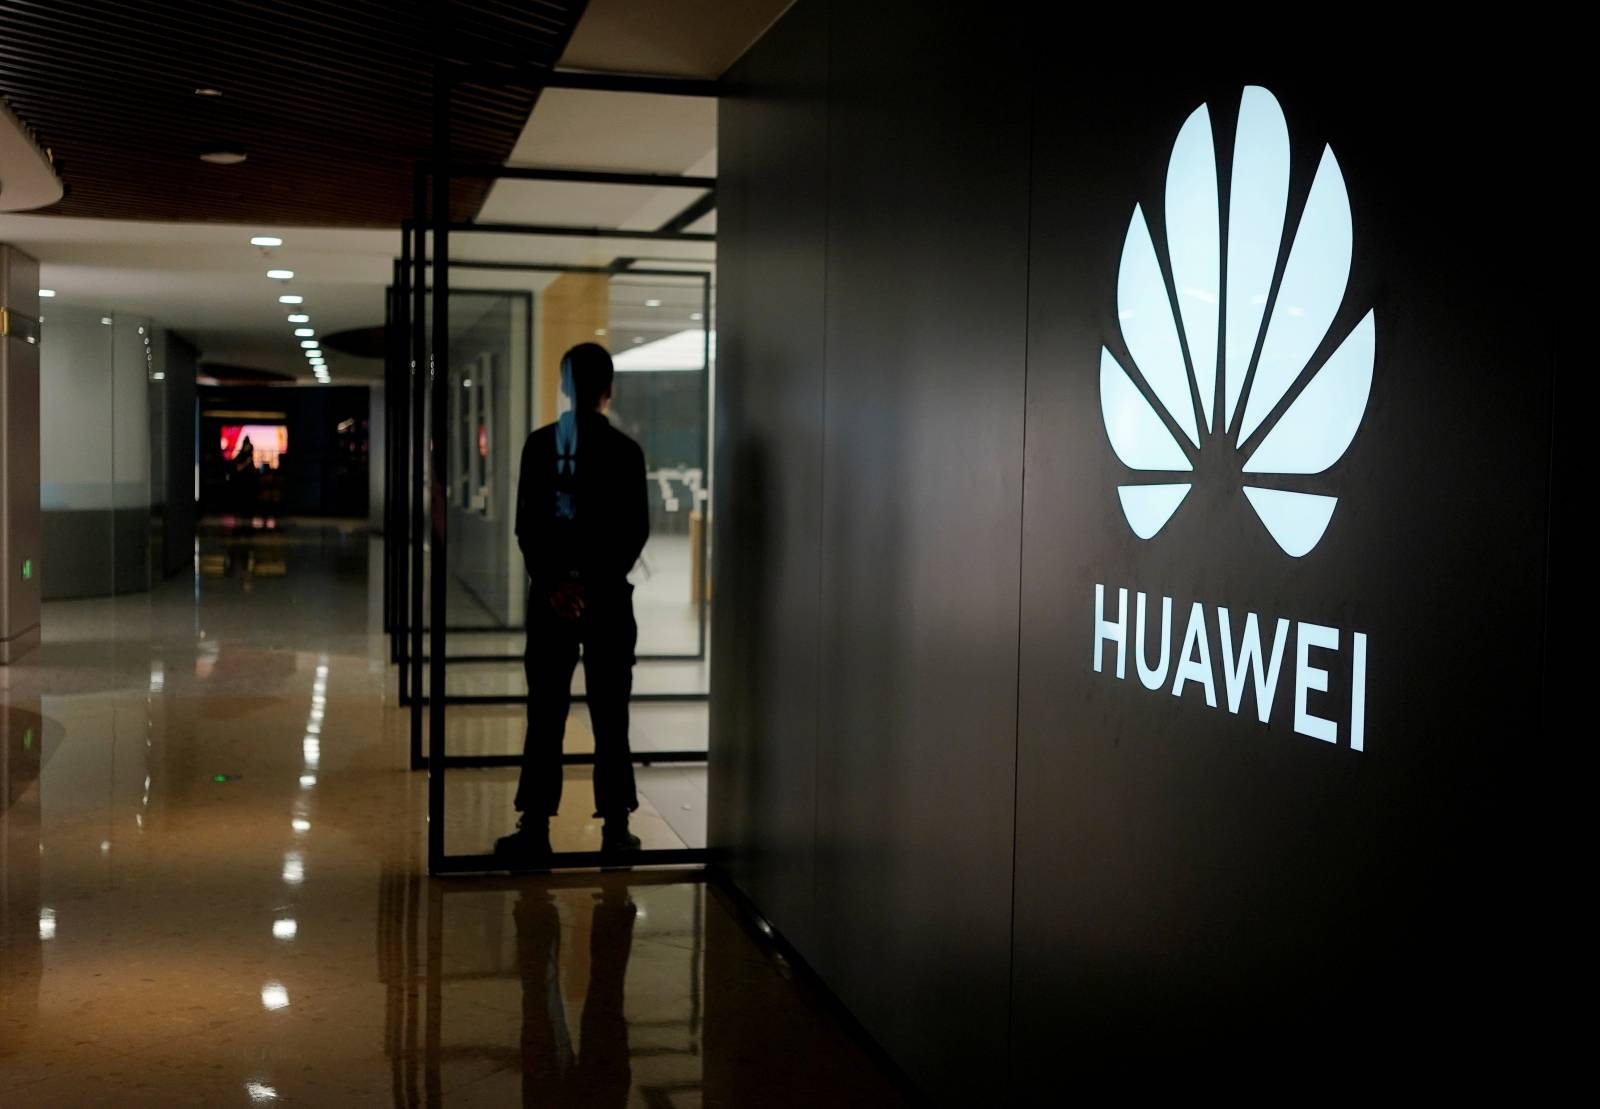 FILE PHOTO: A Huawei company logo is seen at a shopping mall in Shanghai